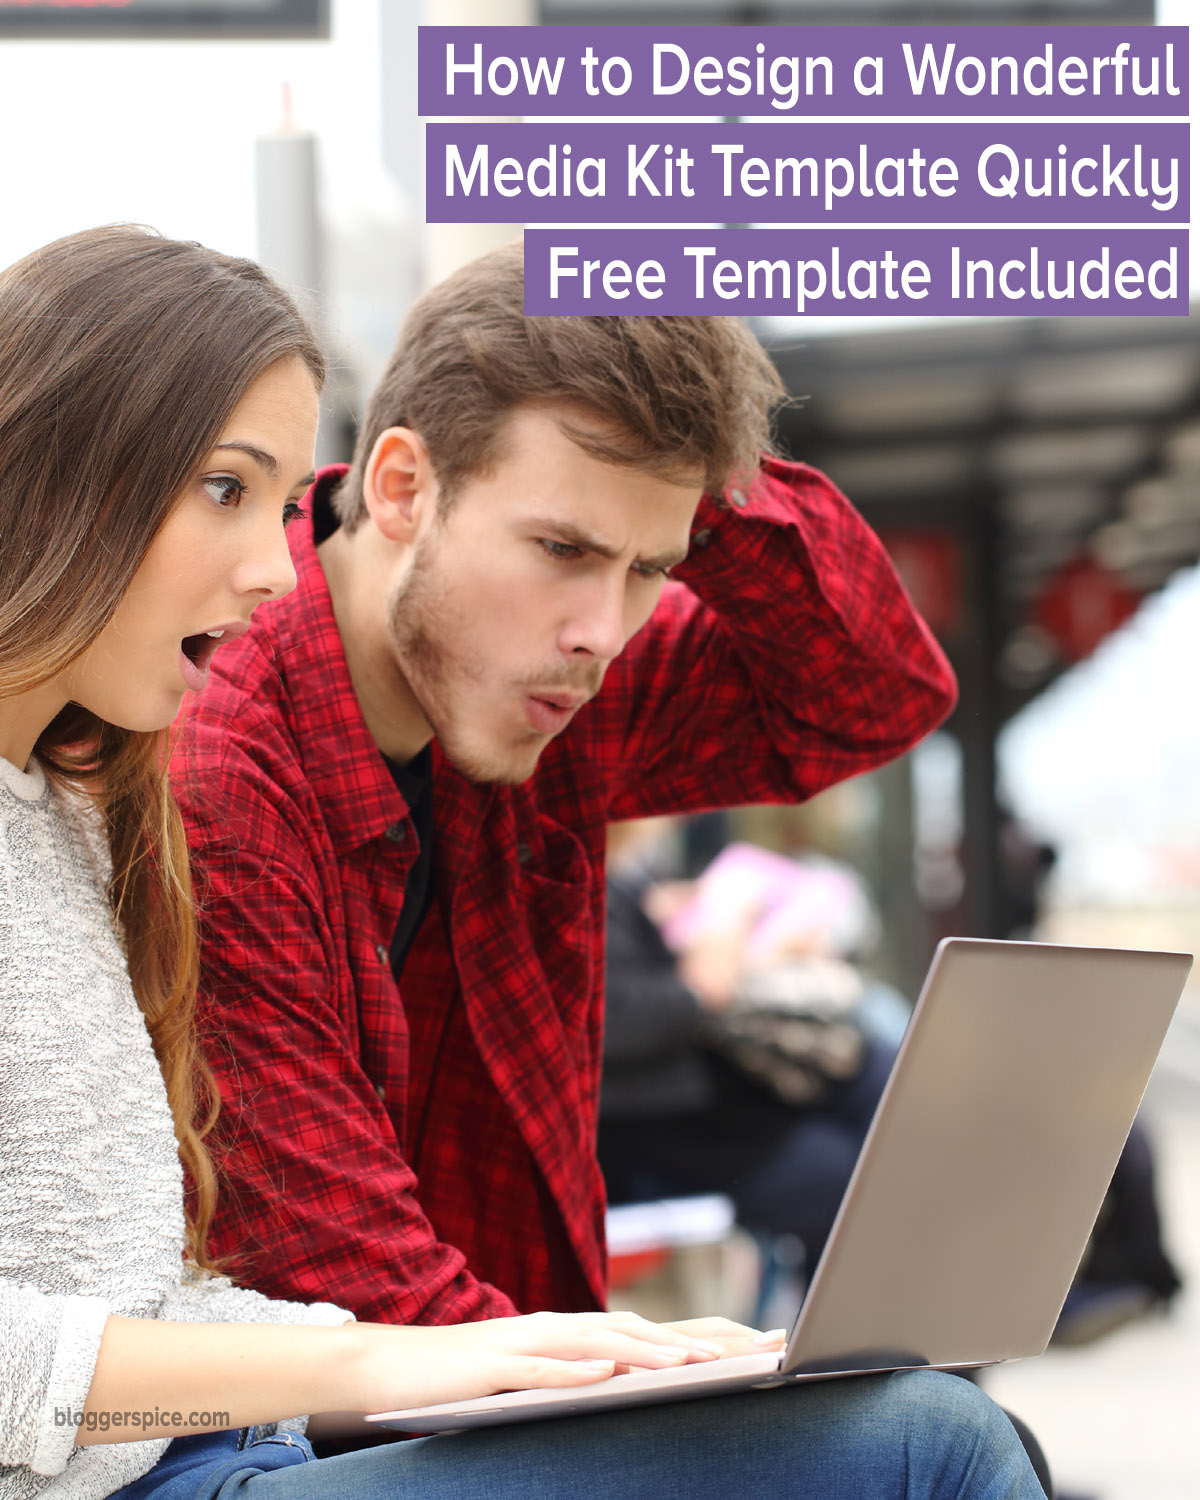 How to Design a Wonderful Media Kit Quickly + Free Template